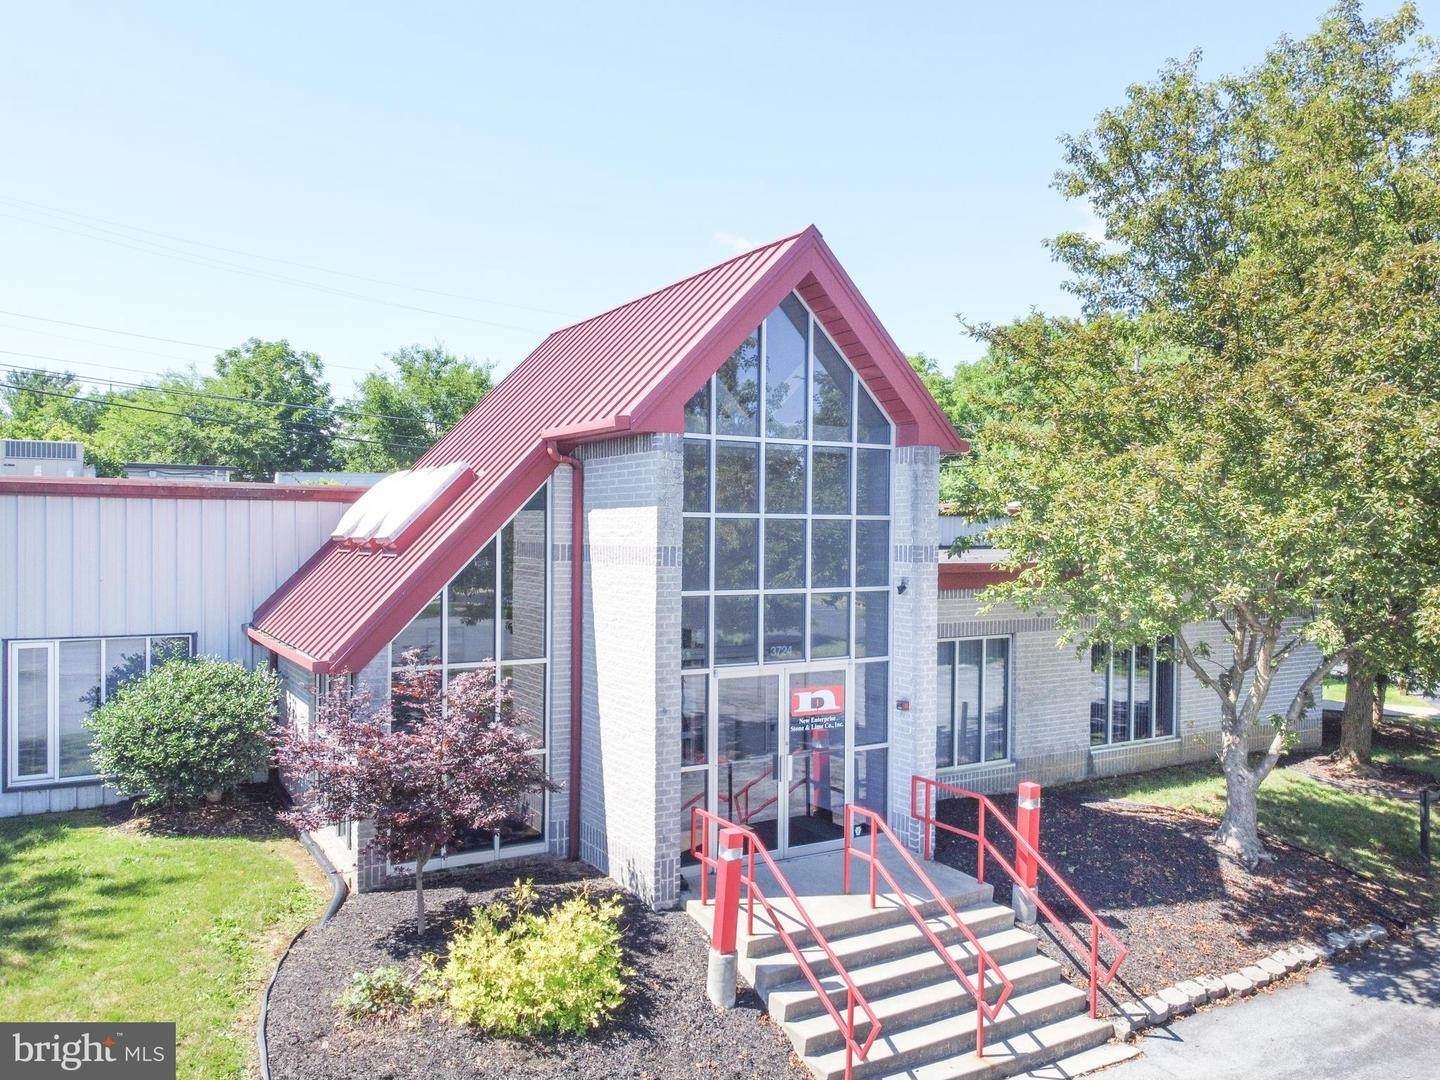 Offices for Sale at 3724 CRESCENT CT W Whitehall, Pennsylvania 18052 United States